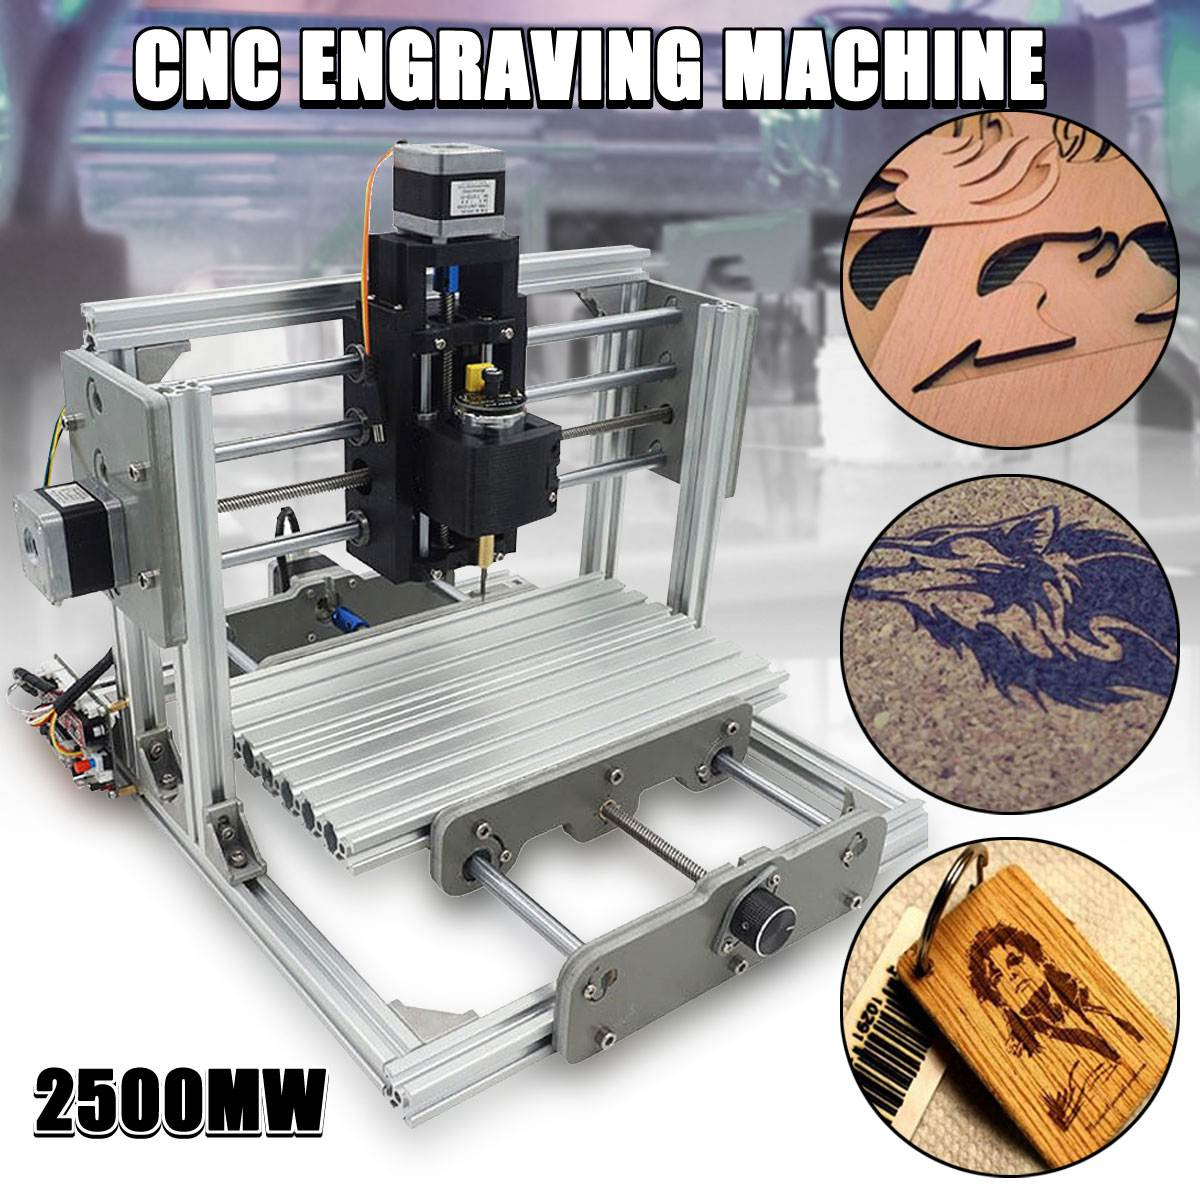 DC 12V 2500MW 3 Axis Mini DIY Desktop CNC Laser Engraver Engraving Machine Milling Carving Cutter Wood Router 0.04MM+ T8 Screws 2016 new pcb milling machine cnc 2020b diy cnc wood carving machine mini engraving machine